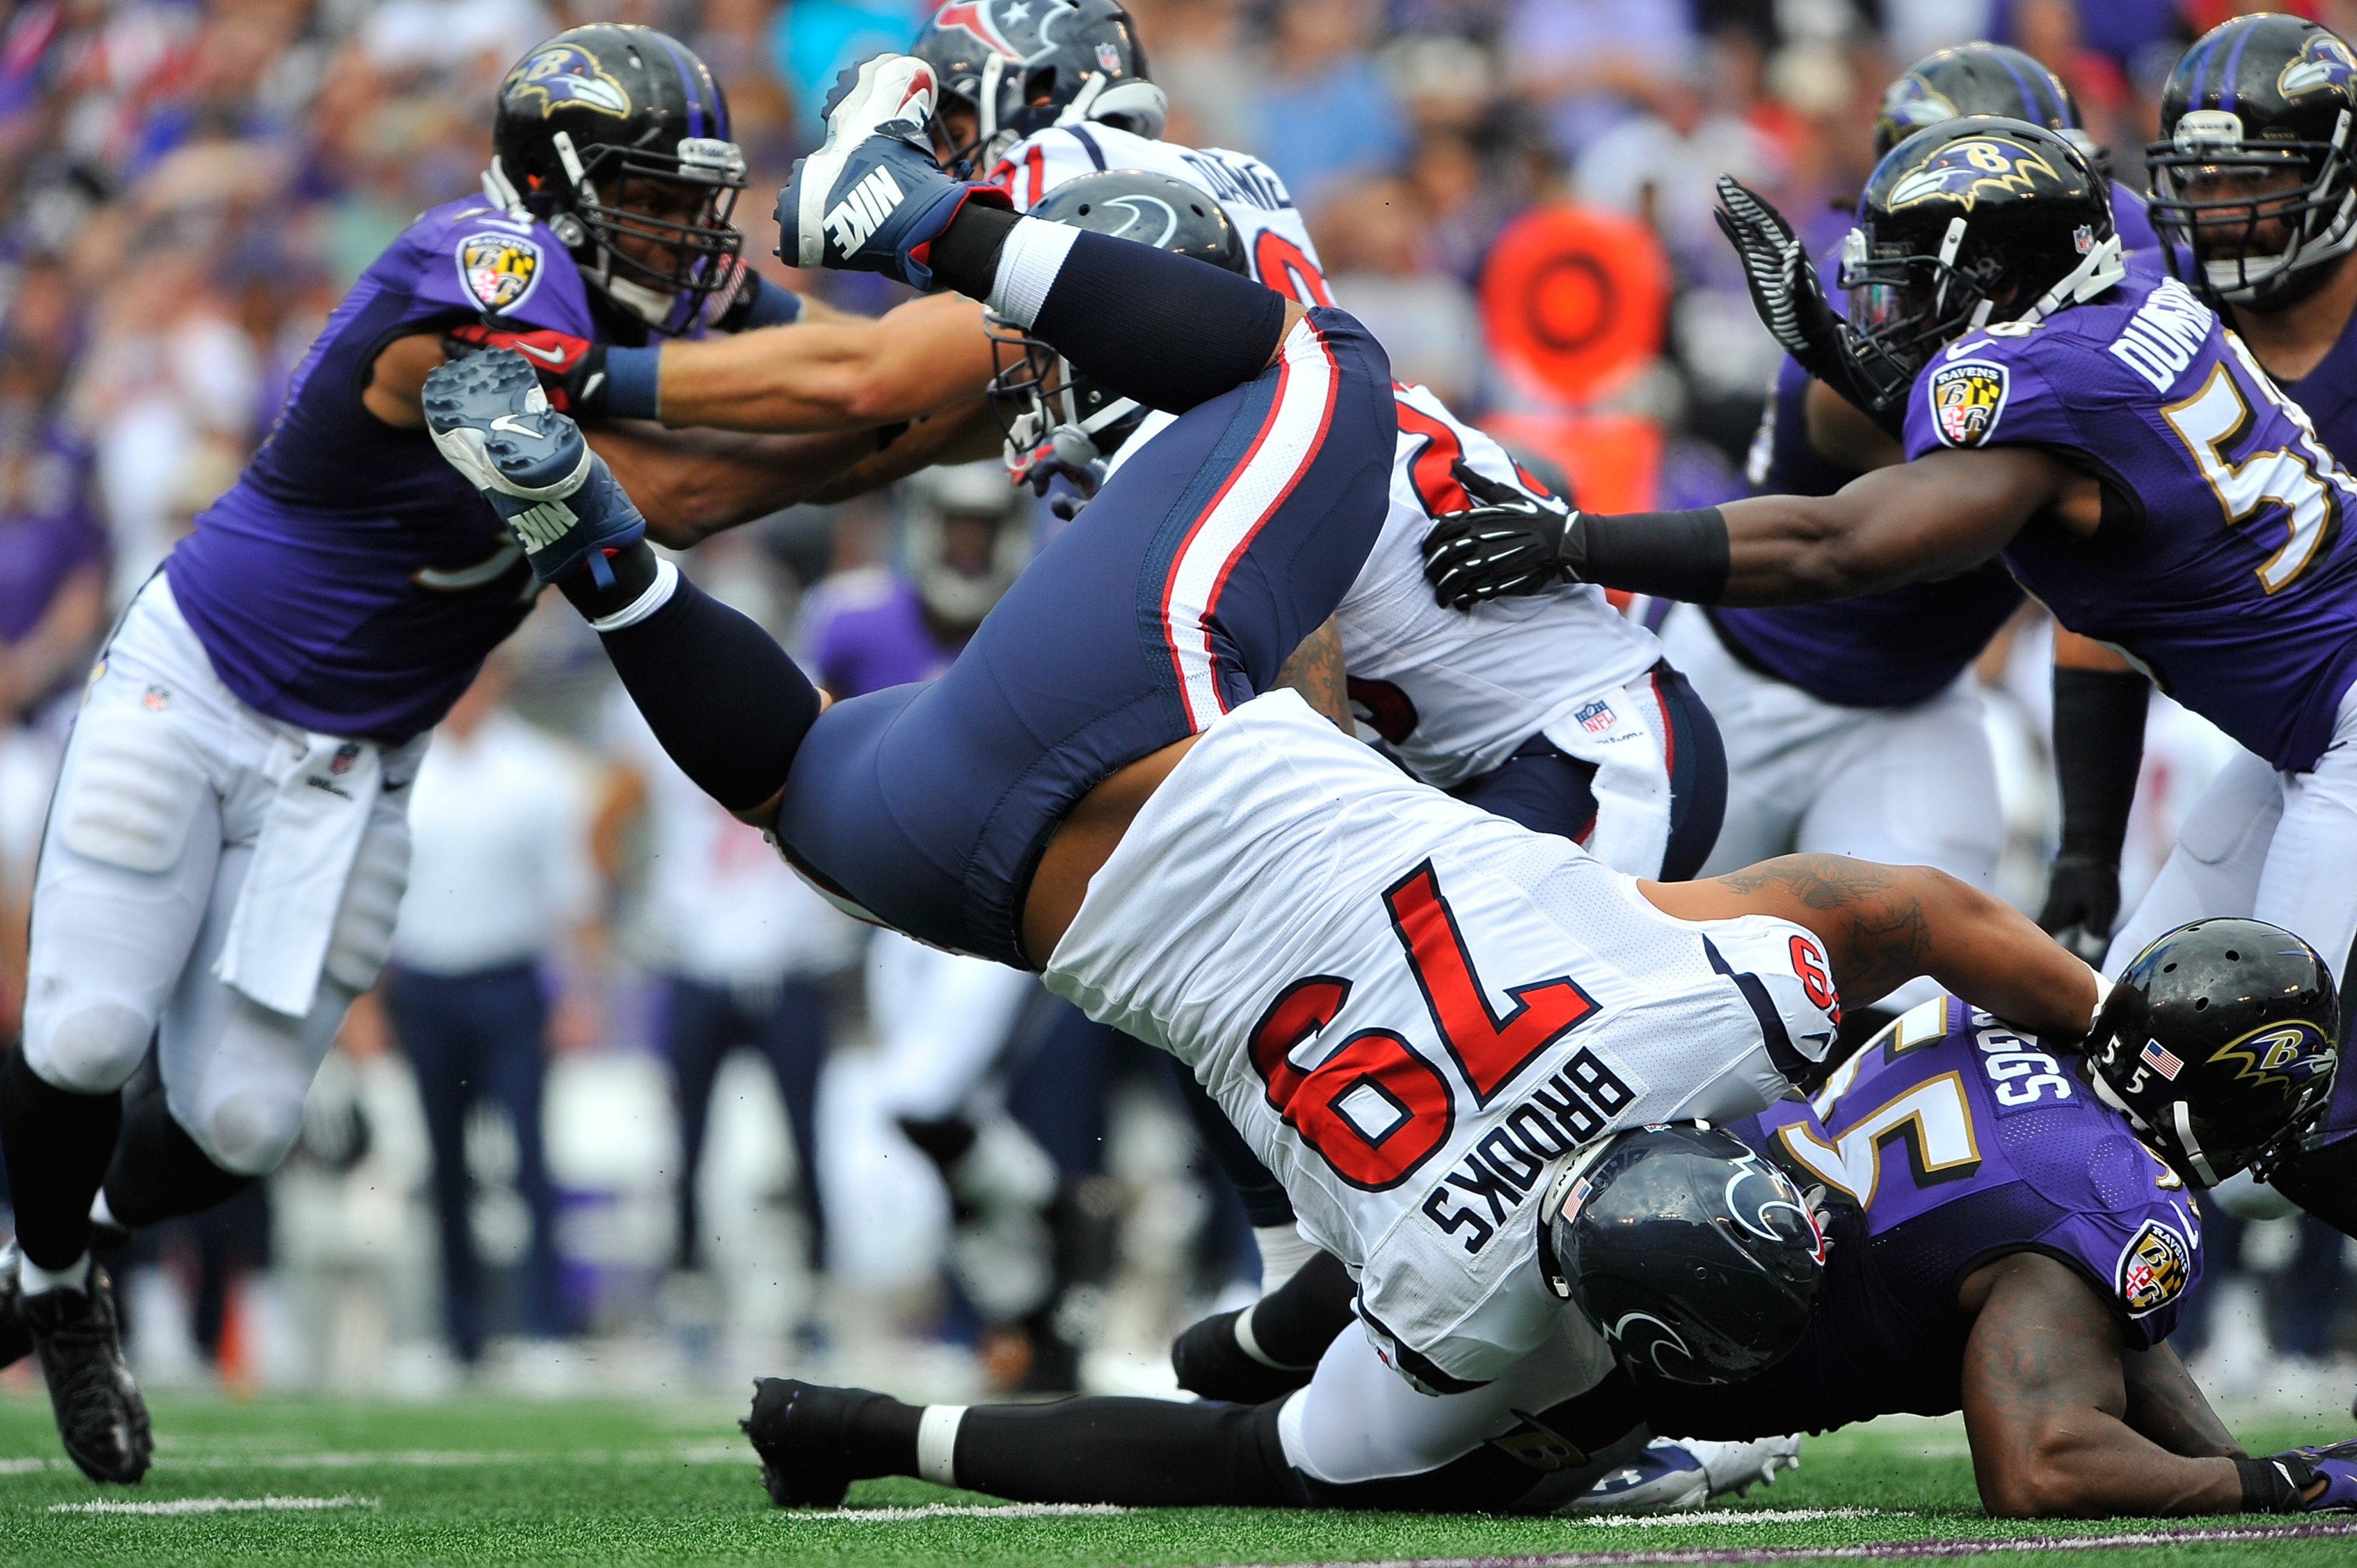 Note:  Brandon Brooks was not injured on this play.